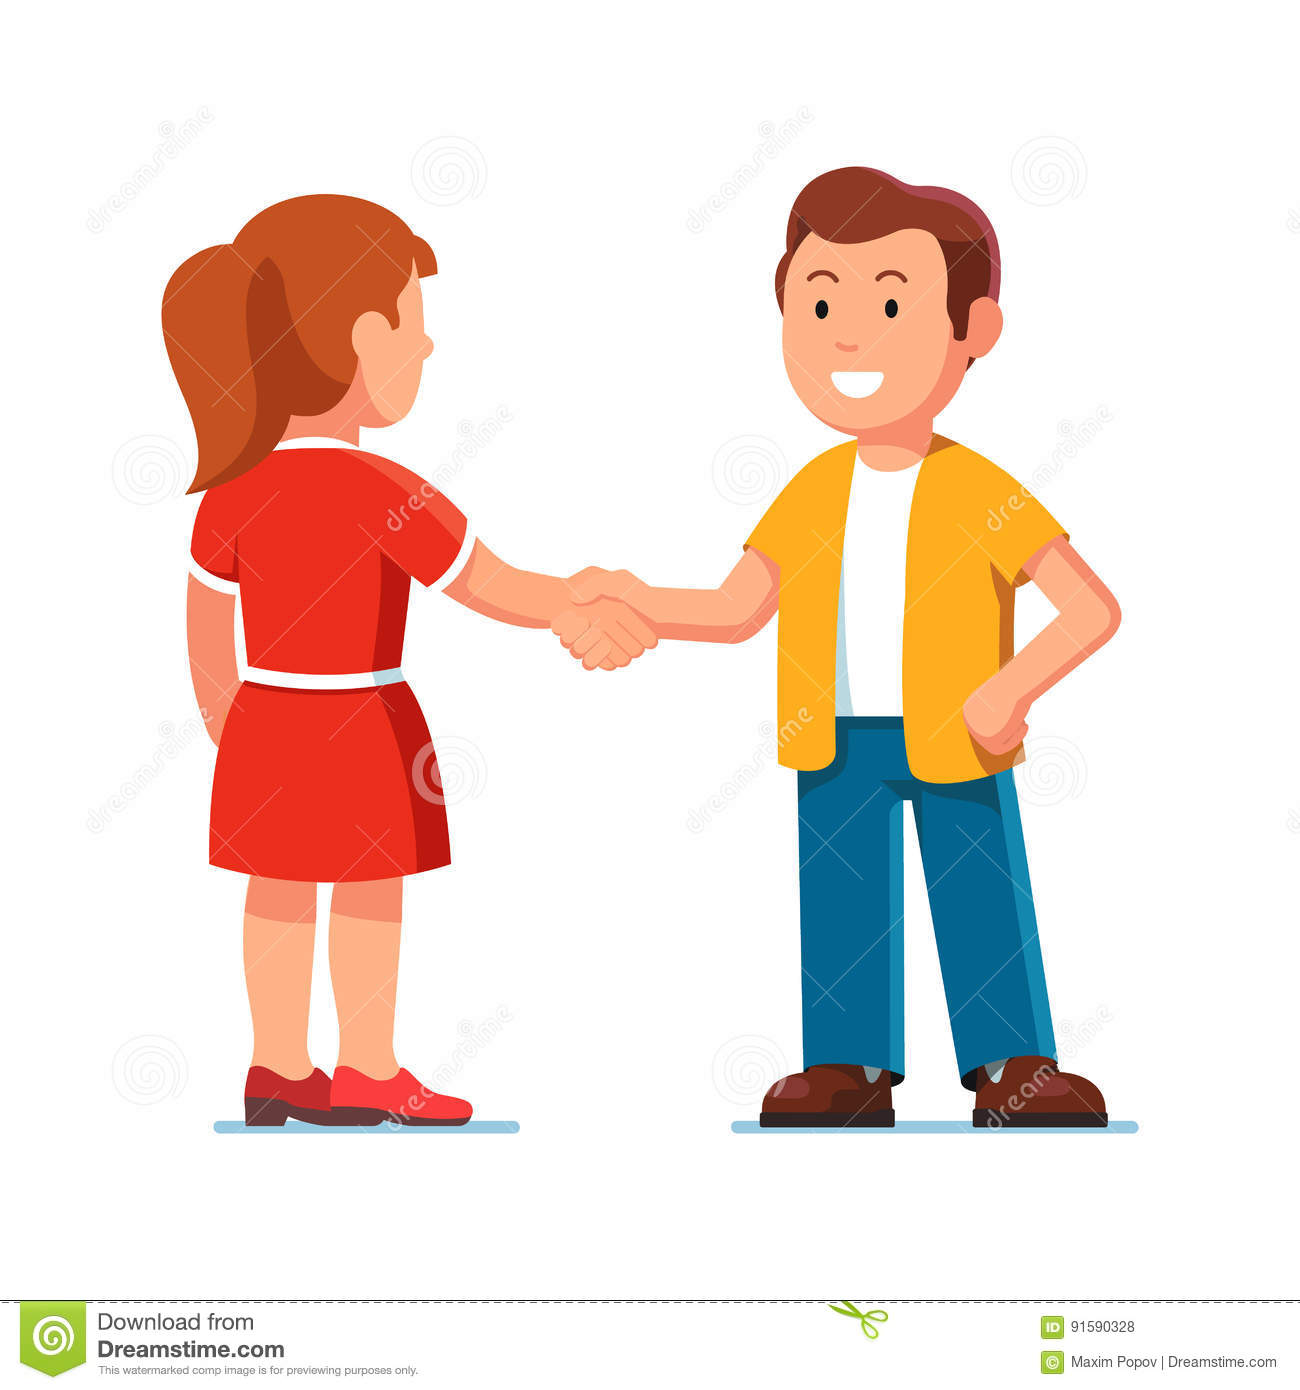 People greeting each other clipart 3 clipart station people greeting each other clipart 3 m4hsunfo